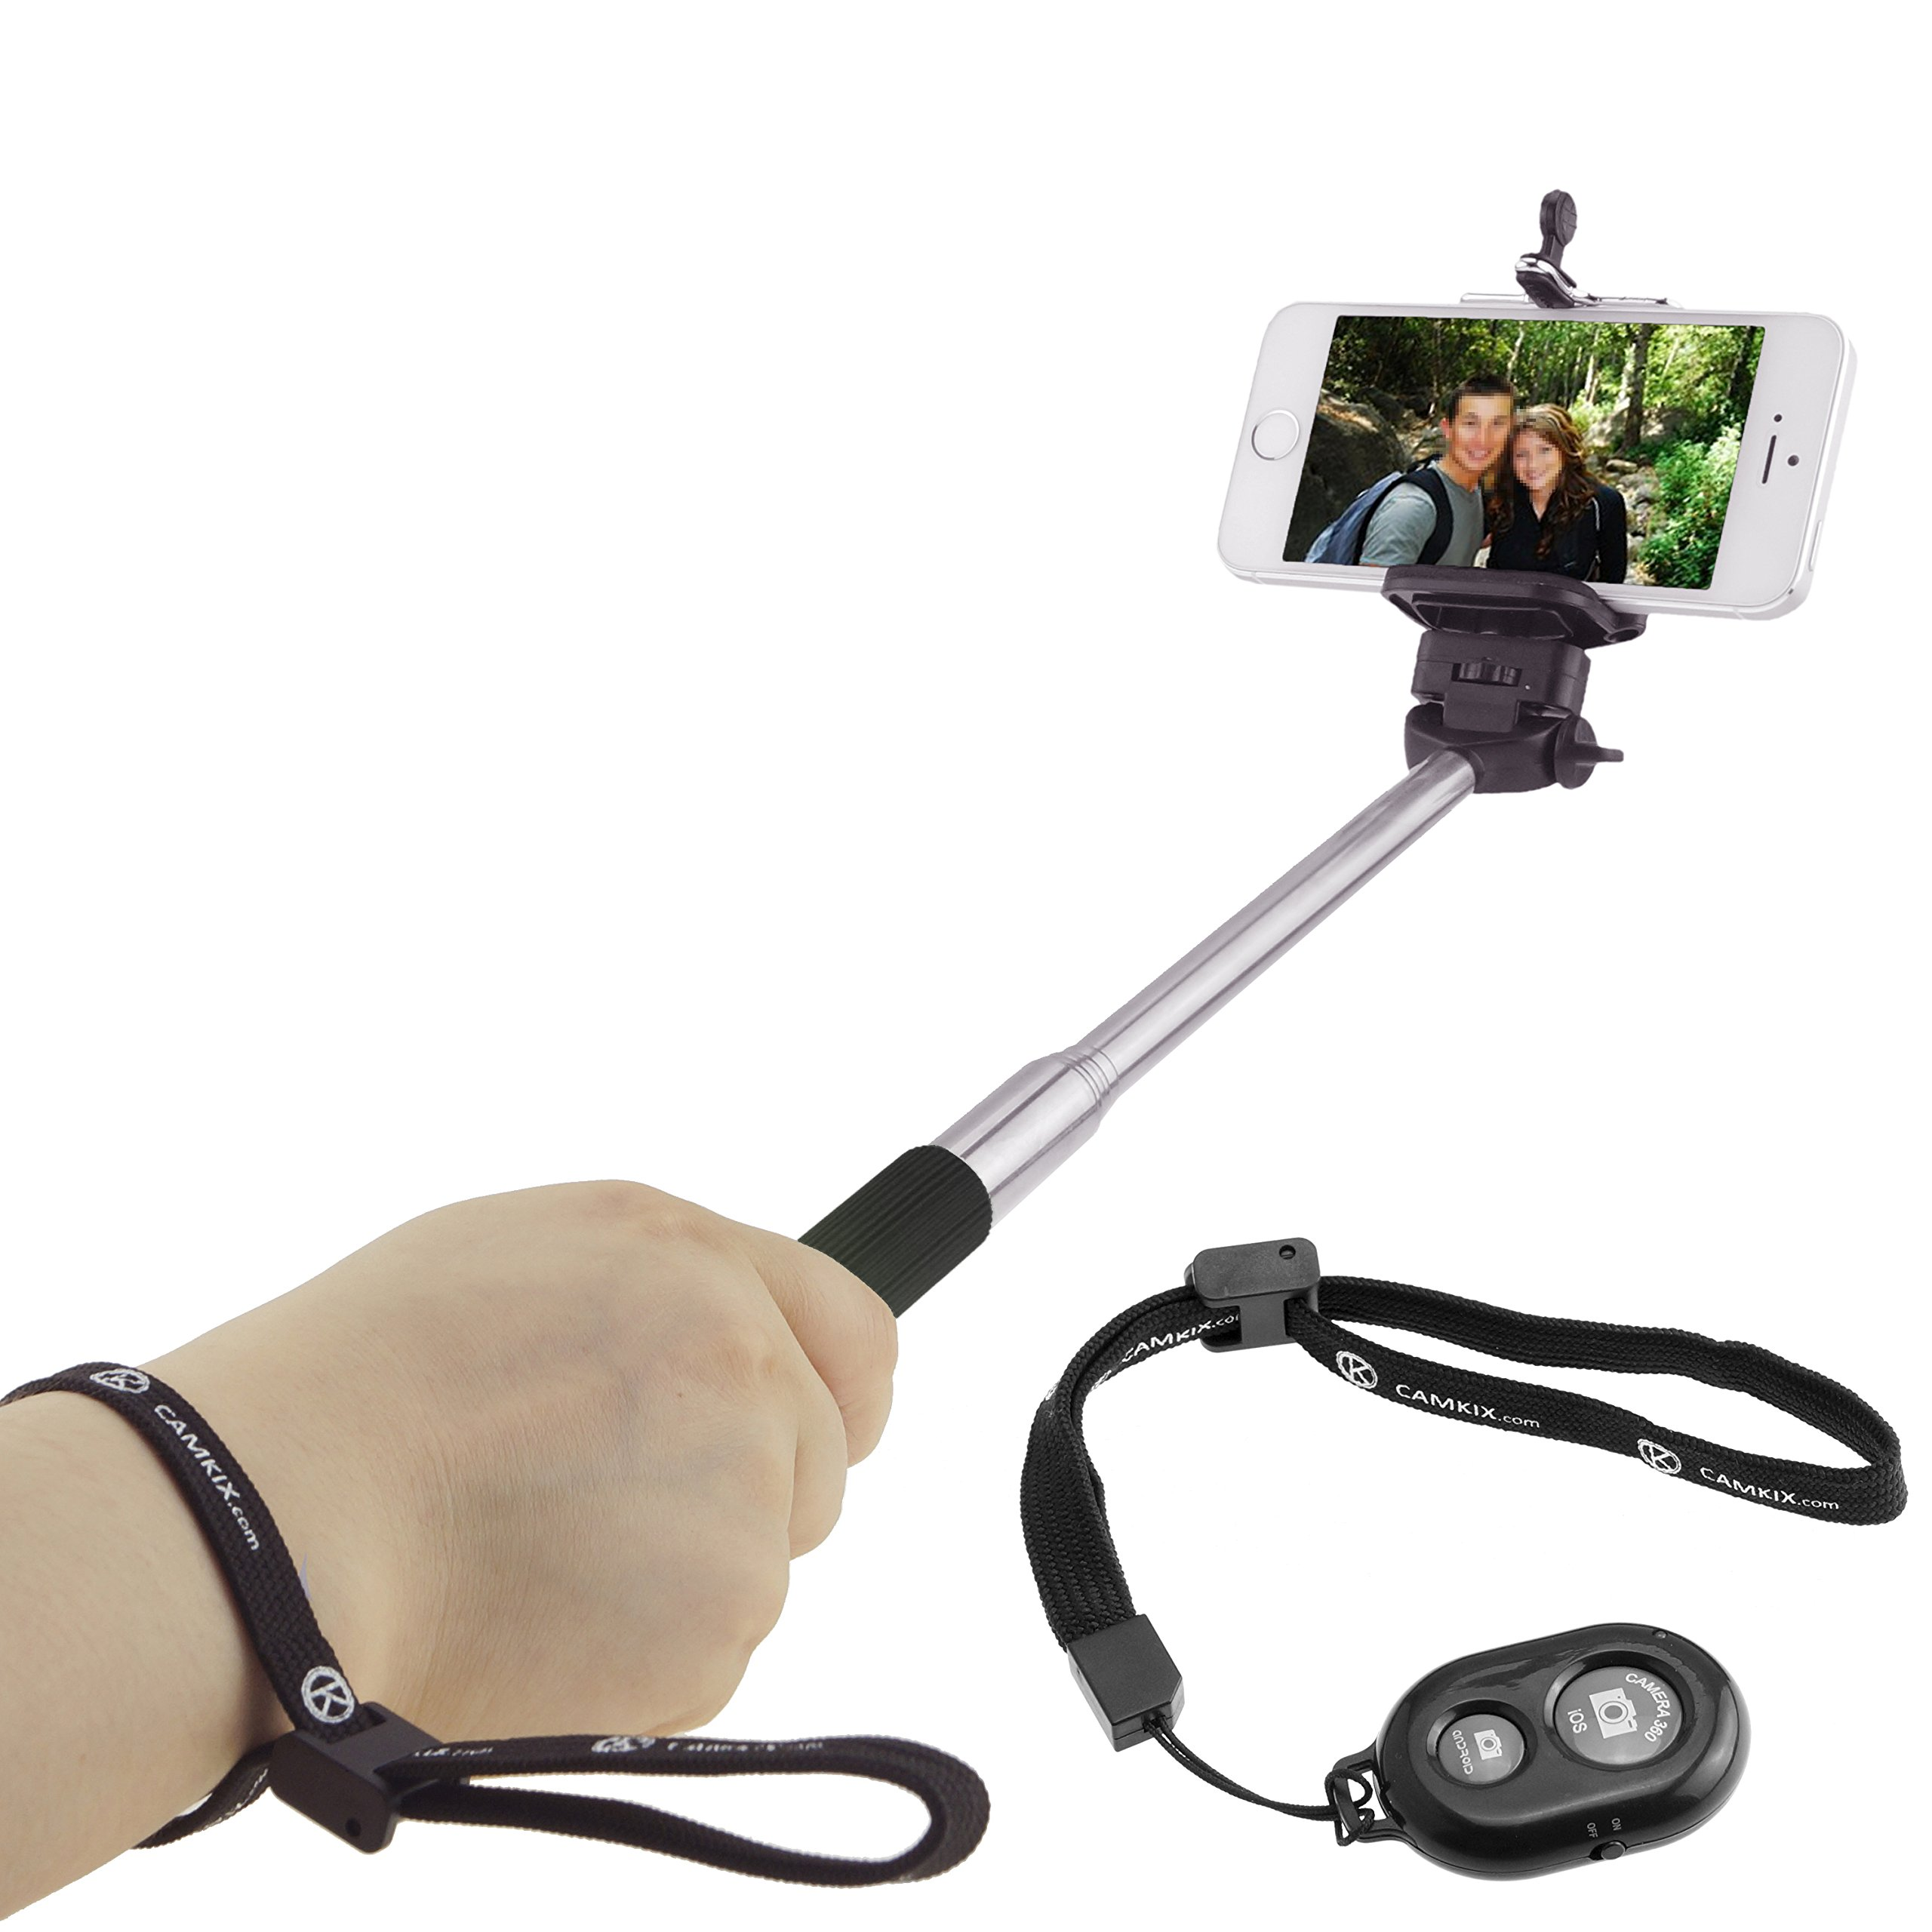 Selfie Stick with Bluetooth Remote for Smartphones - With Universal Phone Holder up to 3.25 Inch in Width - Adjustable Handheld Monopod 11'' - 40'' - Light, Compact, Easy to Carry